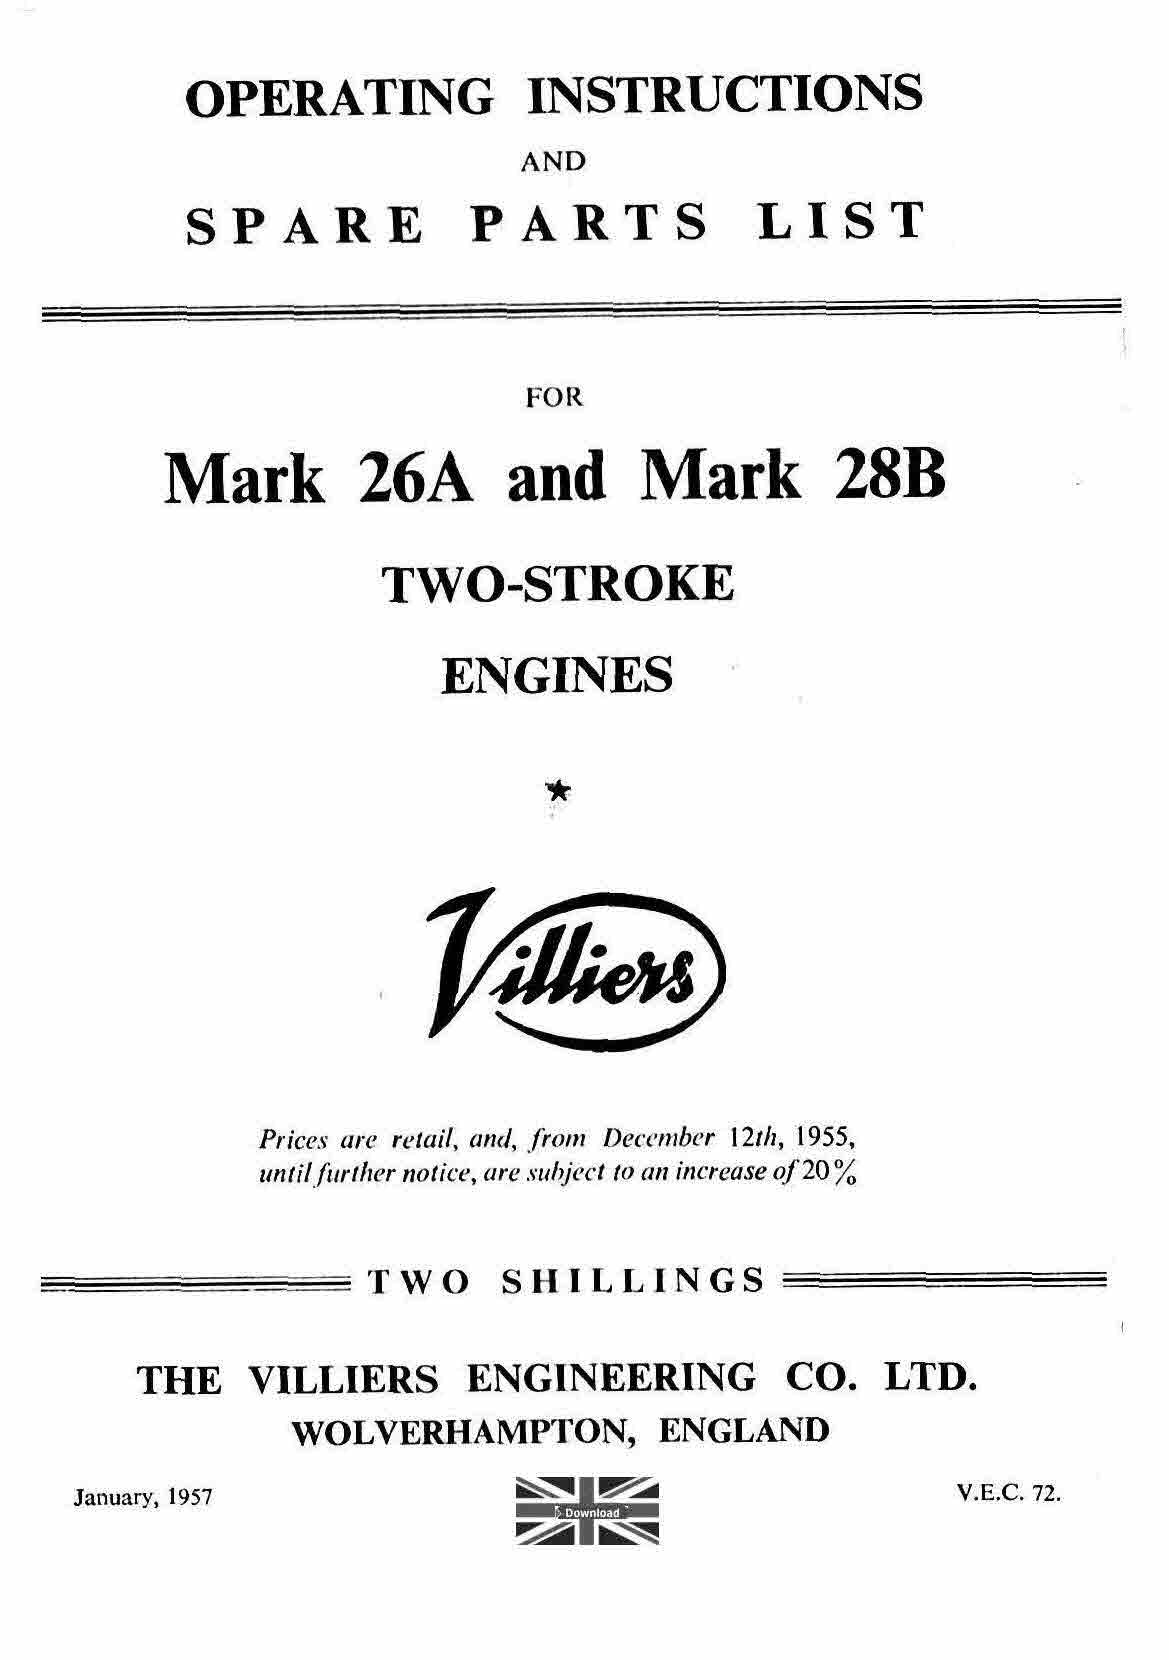 Villiers Stationary Engines